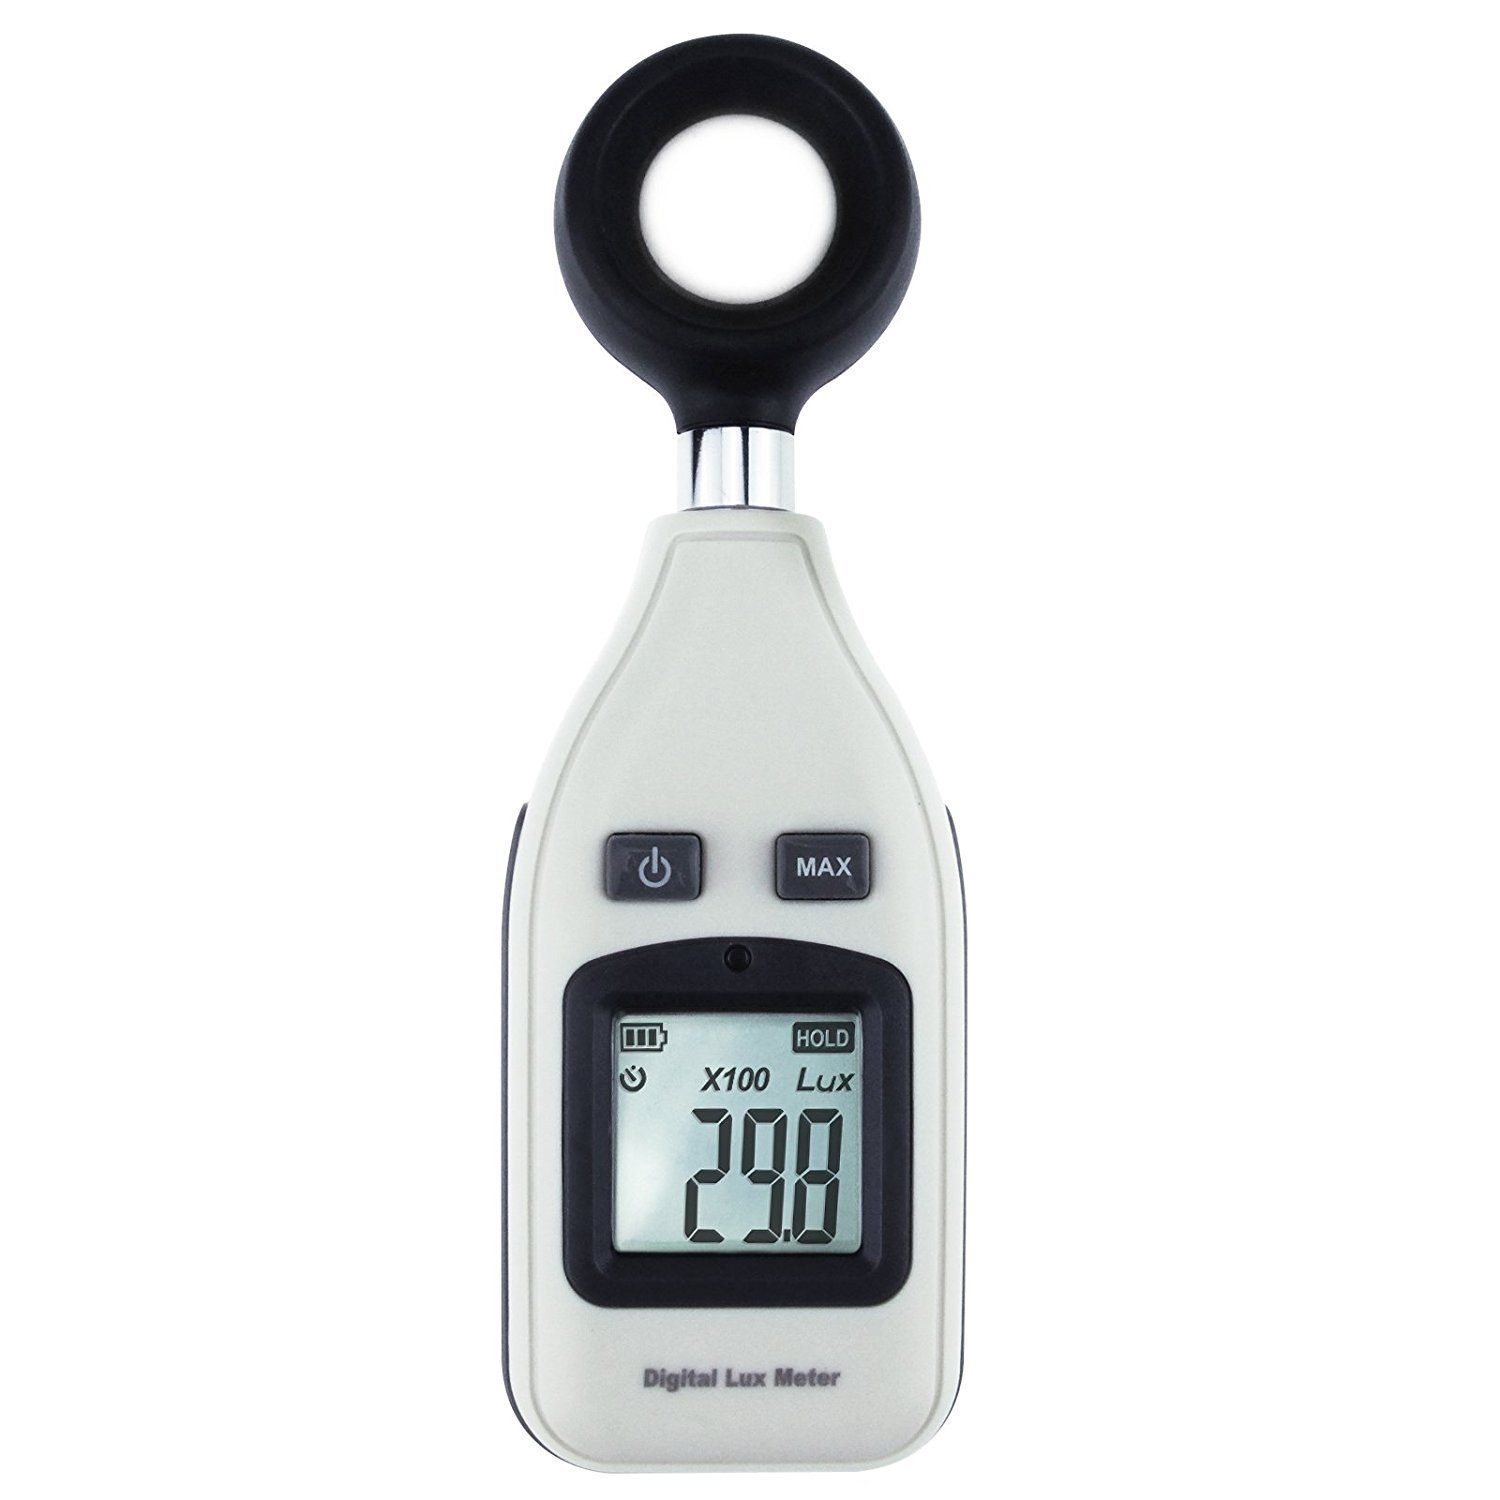 Digital Mini Portable Light Meter Lux Meter Illuminance (Measurement Range 0 to 200,000 LUX/ 0 to 18500 FC) with Backlight Max Min